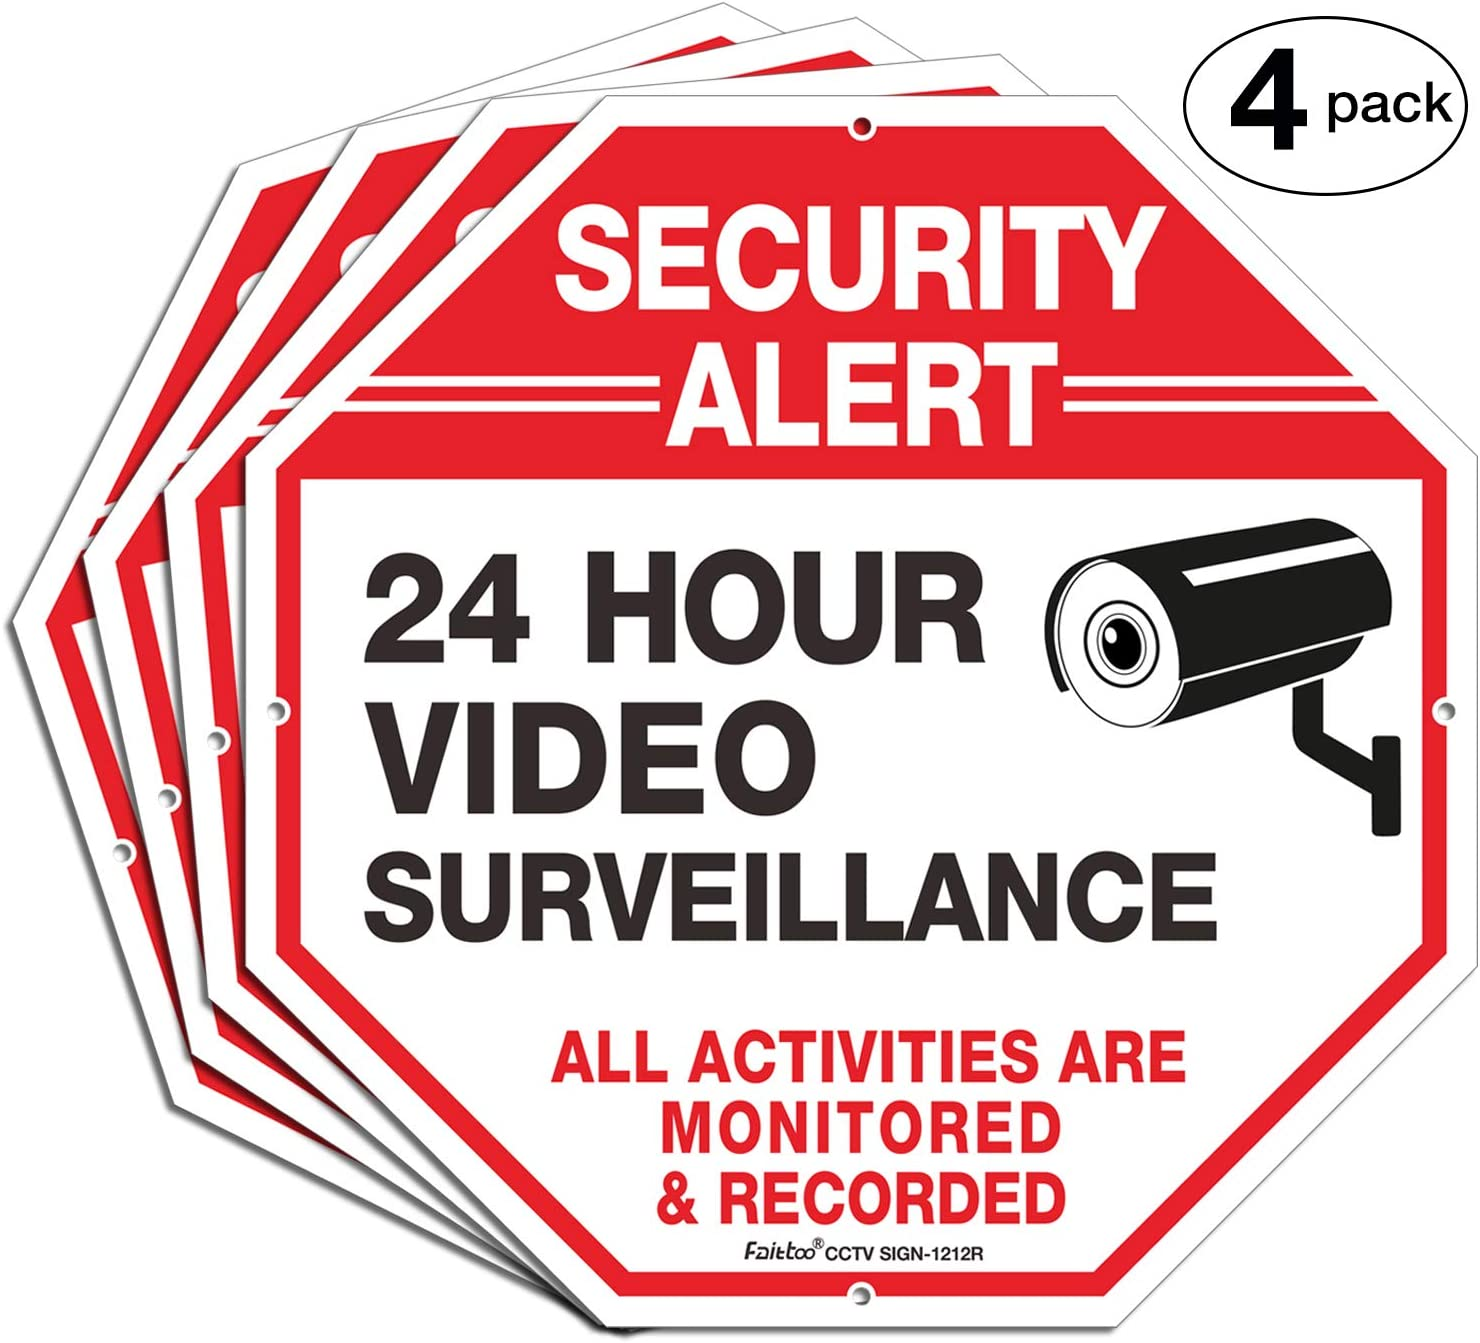 Video Surveillance Signs, Security Signs,Octagon 12 x12 Inches 40Mil Thick Aluminum Reflective Sign for Home Business CCTV Security Camera, UV Protected & Waterproof, 4 Pack